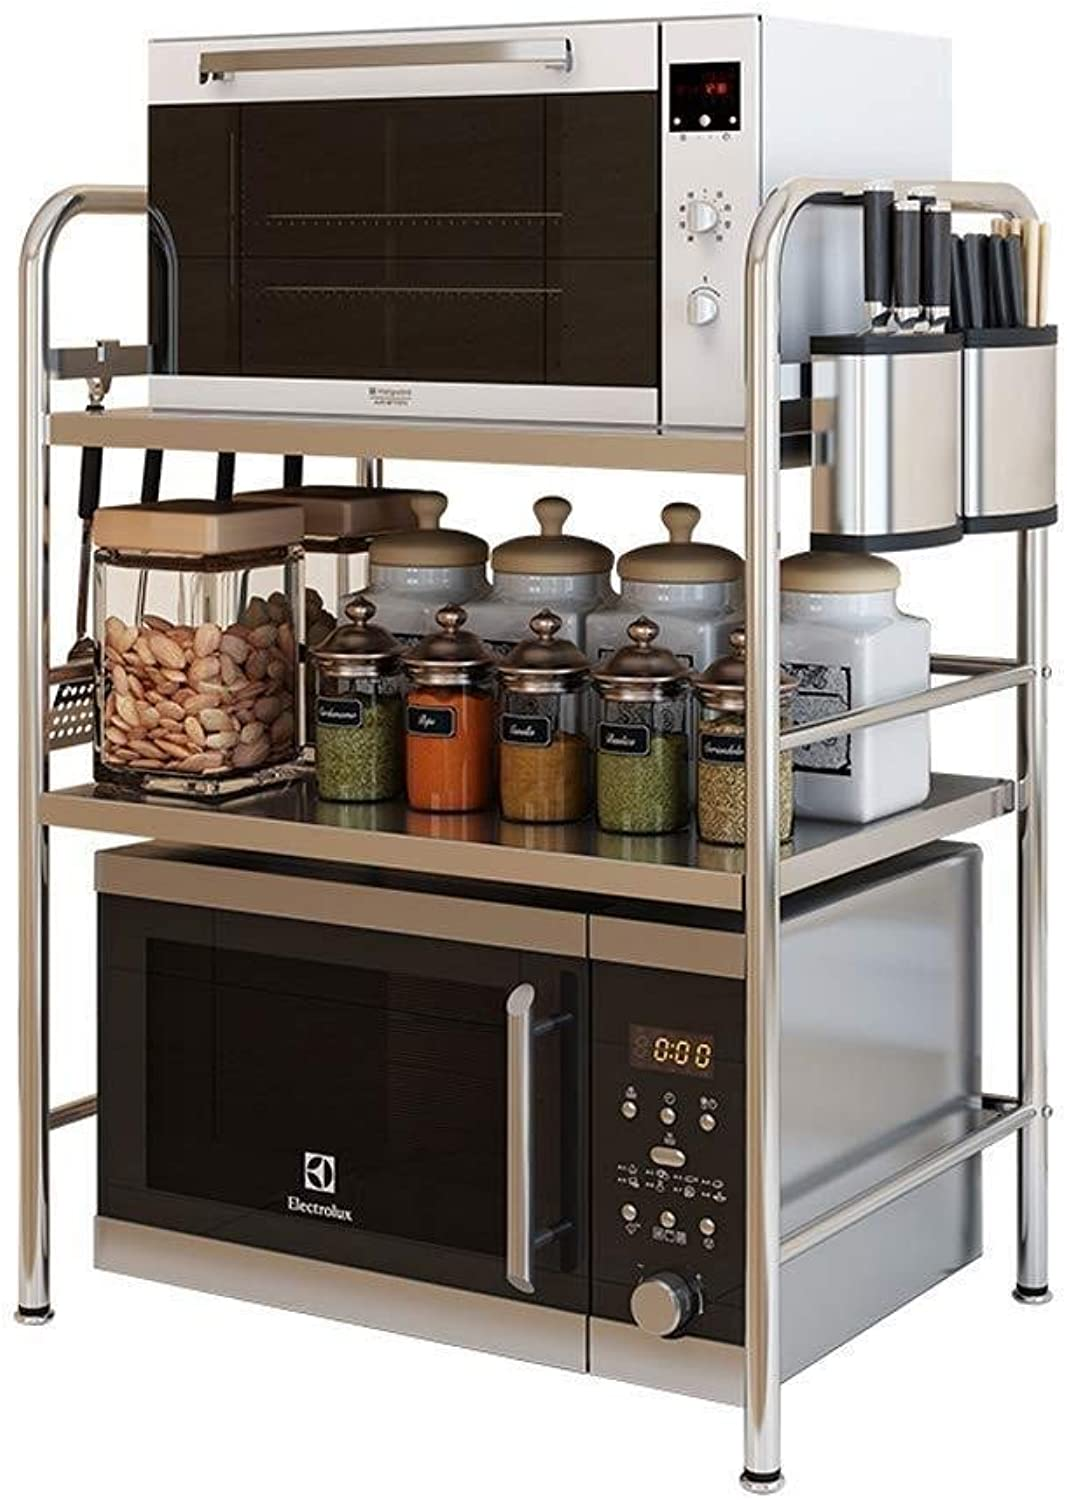 Storage Rack- 304 Stainless Steel Kitchen Rack Microwave Oven Rack Household Oven Rack 3 Layer Multi-Function Storage Floor Rack ZXMDMZ (Size   Small)